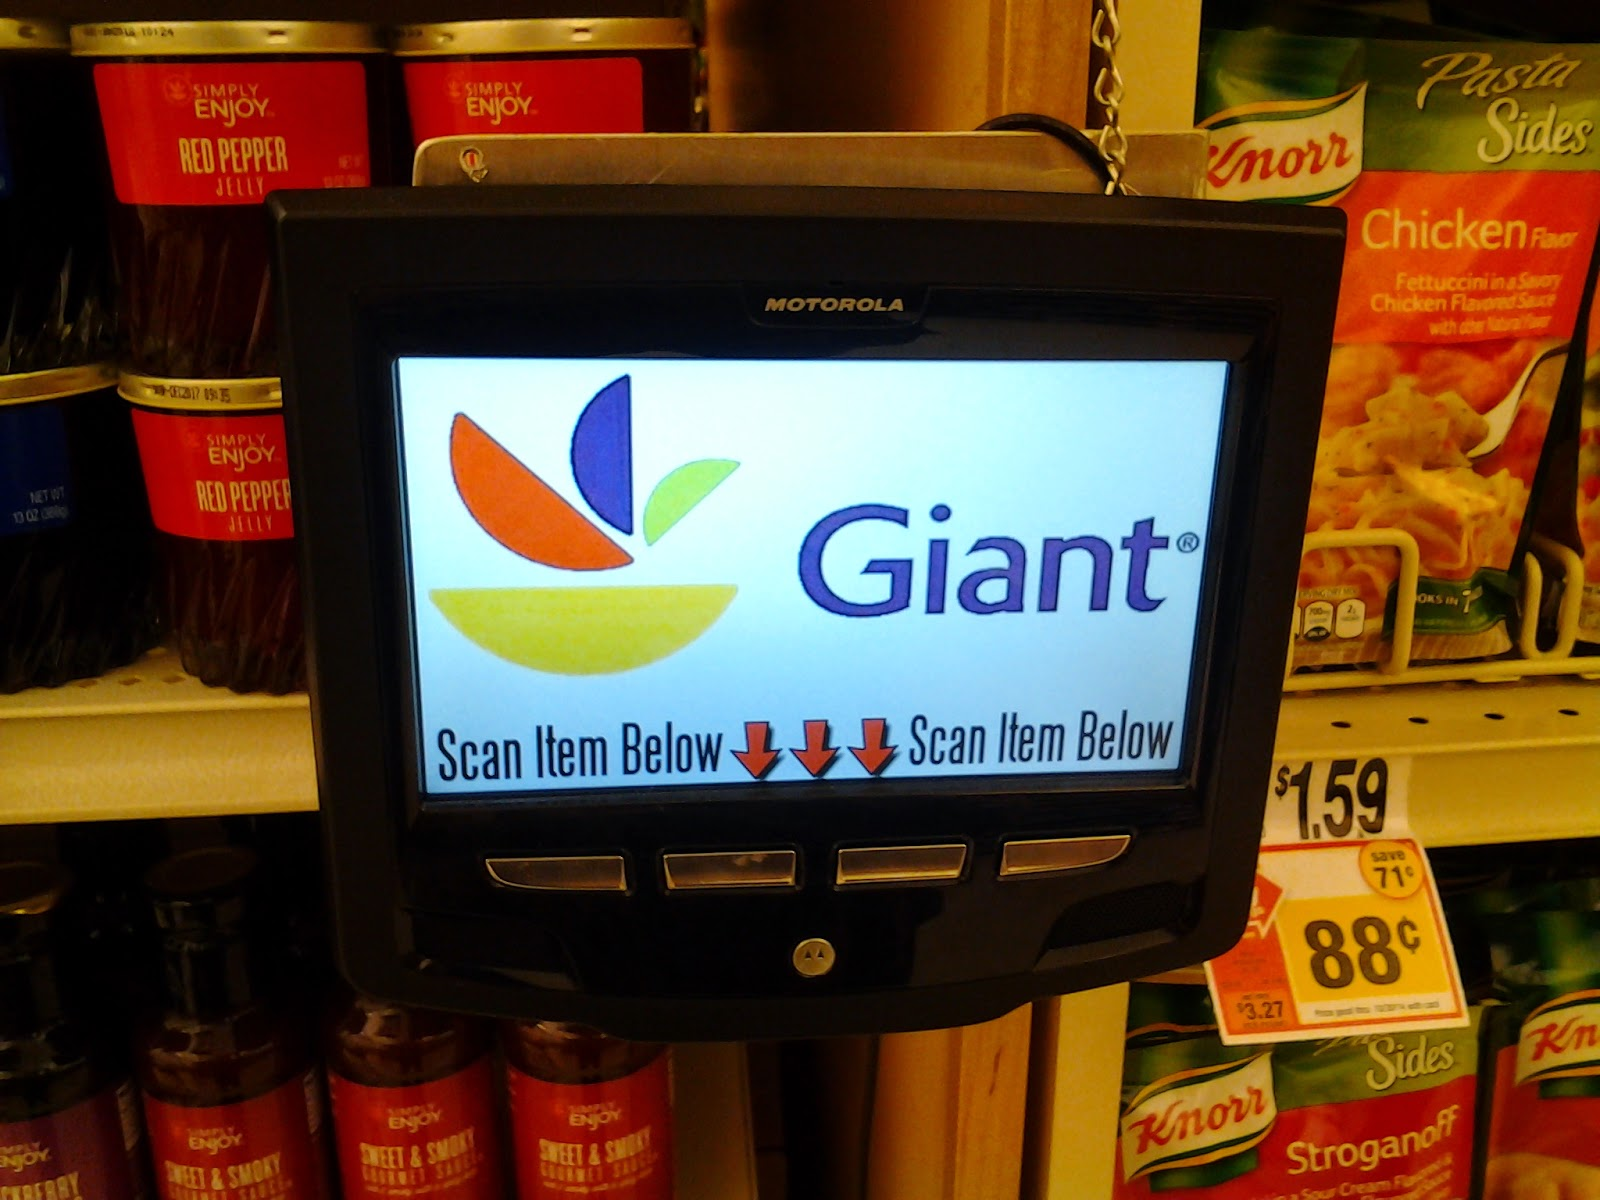 Giant price scanner